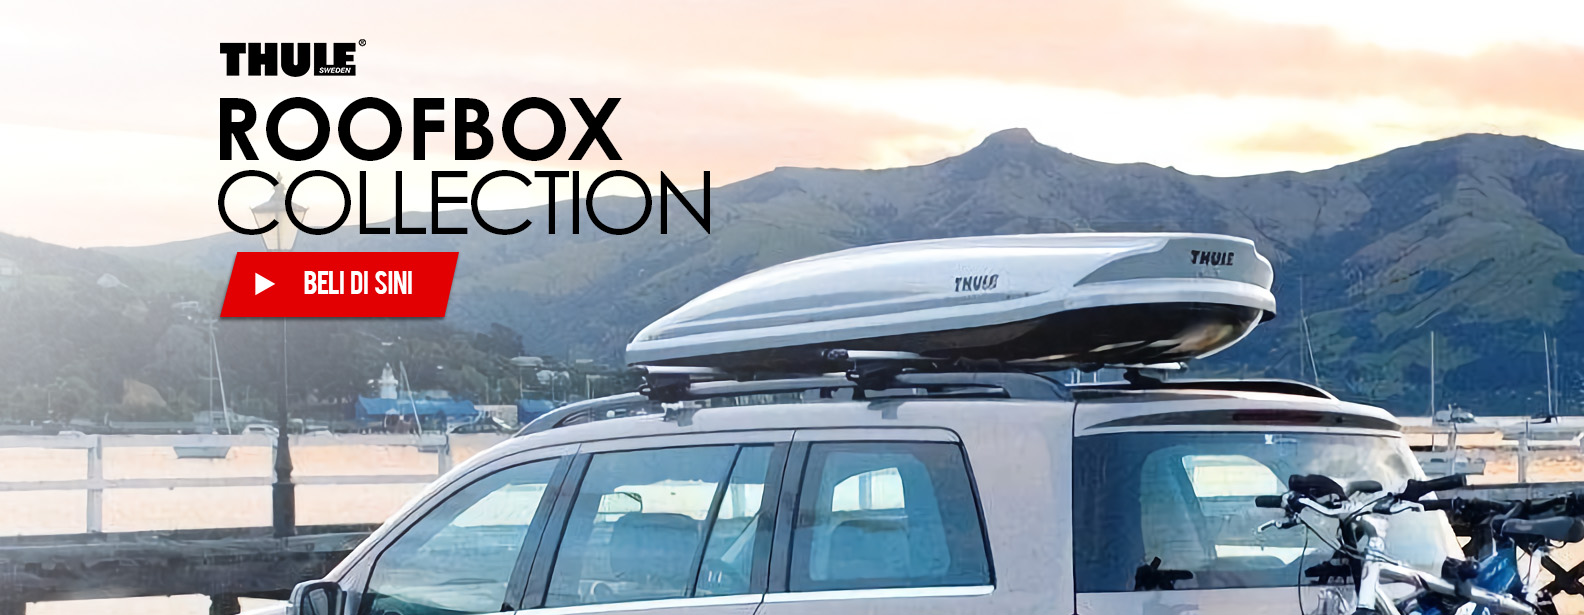 Thule Roof Box Collection